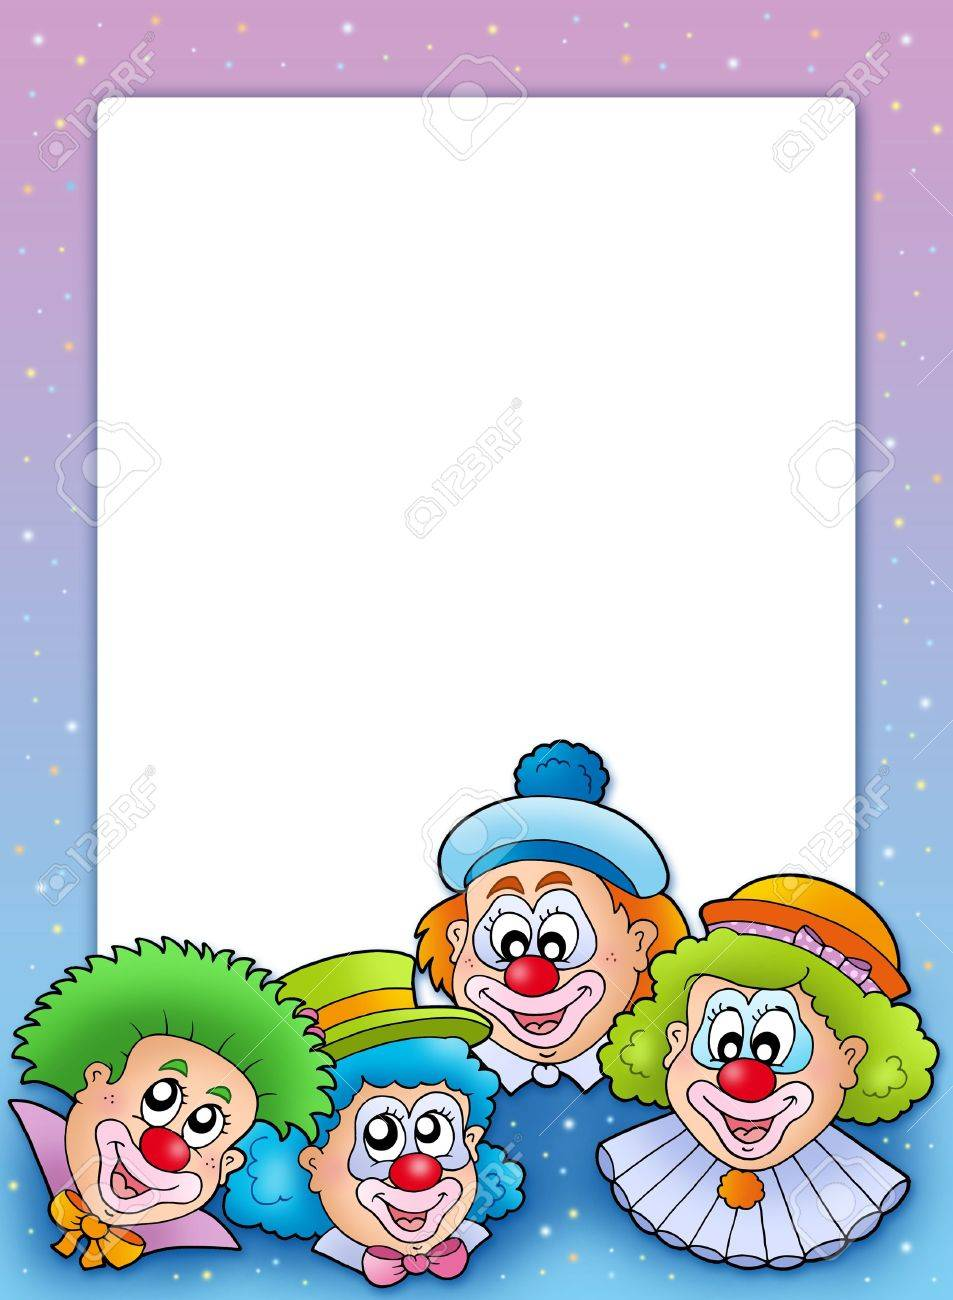 frame with various clowns color illustration stock photo